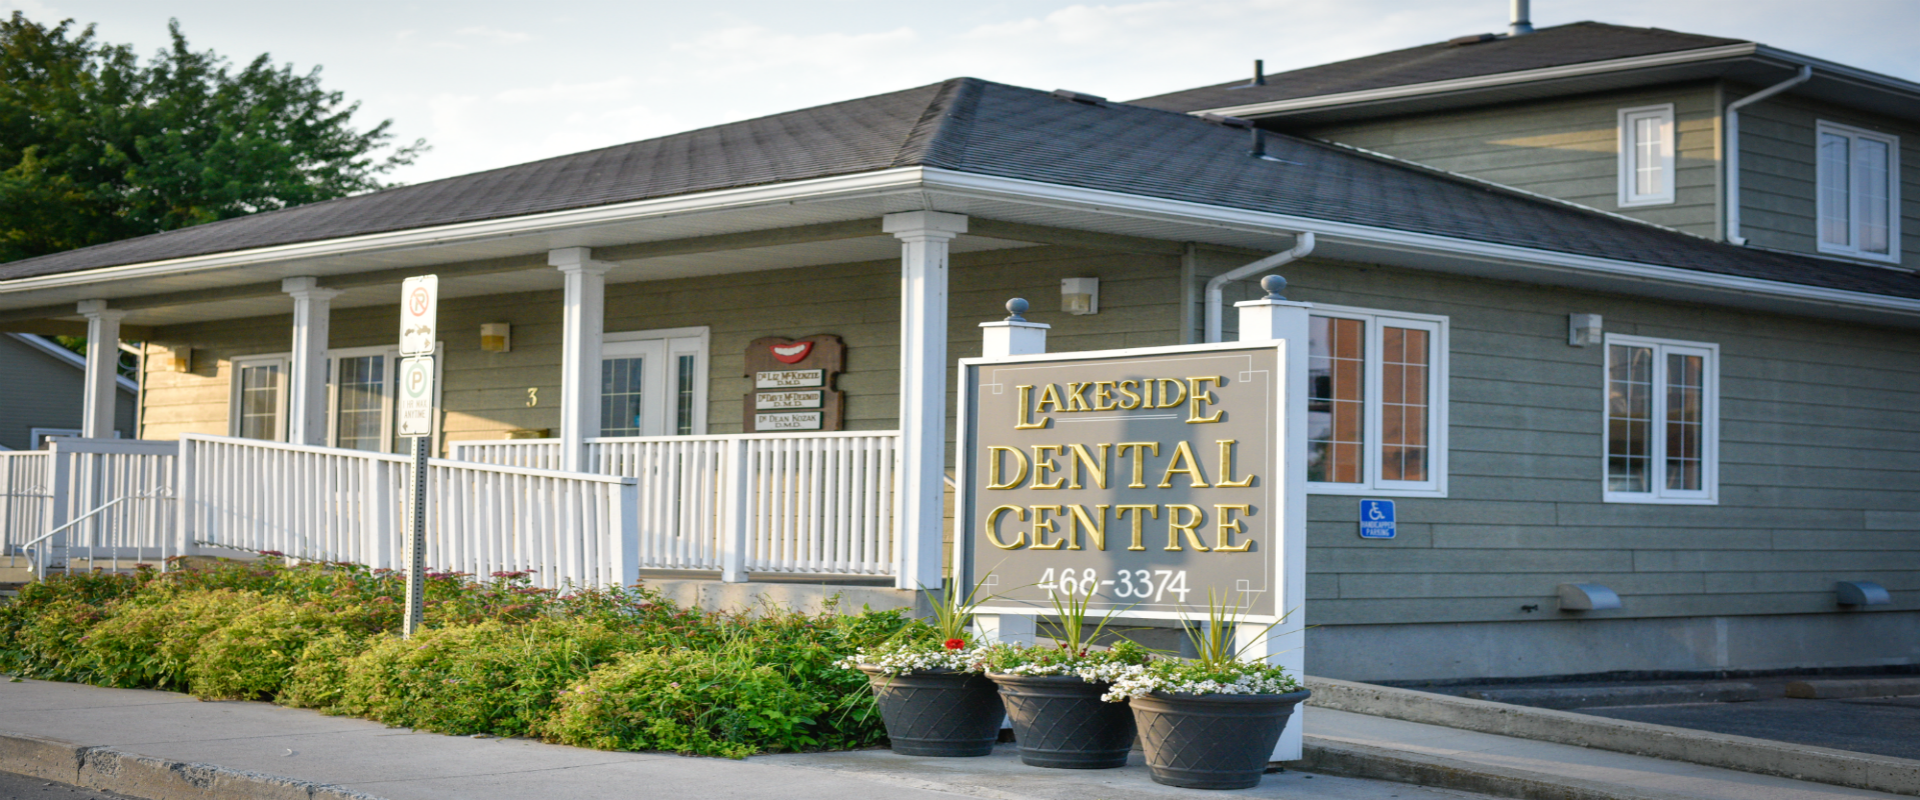 Lakeside Dental | Kenora Dentist